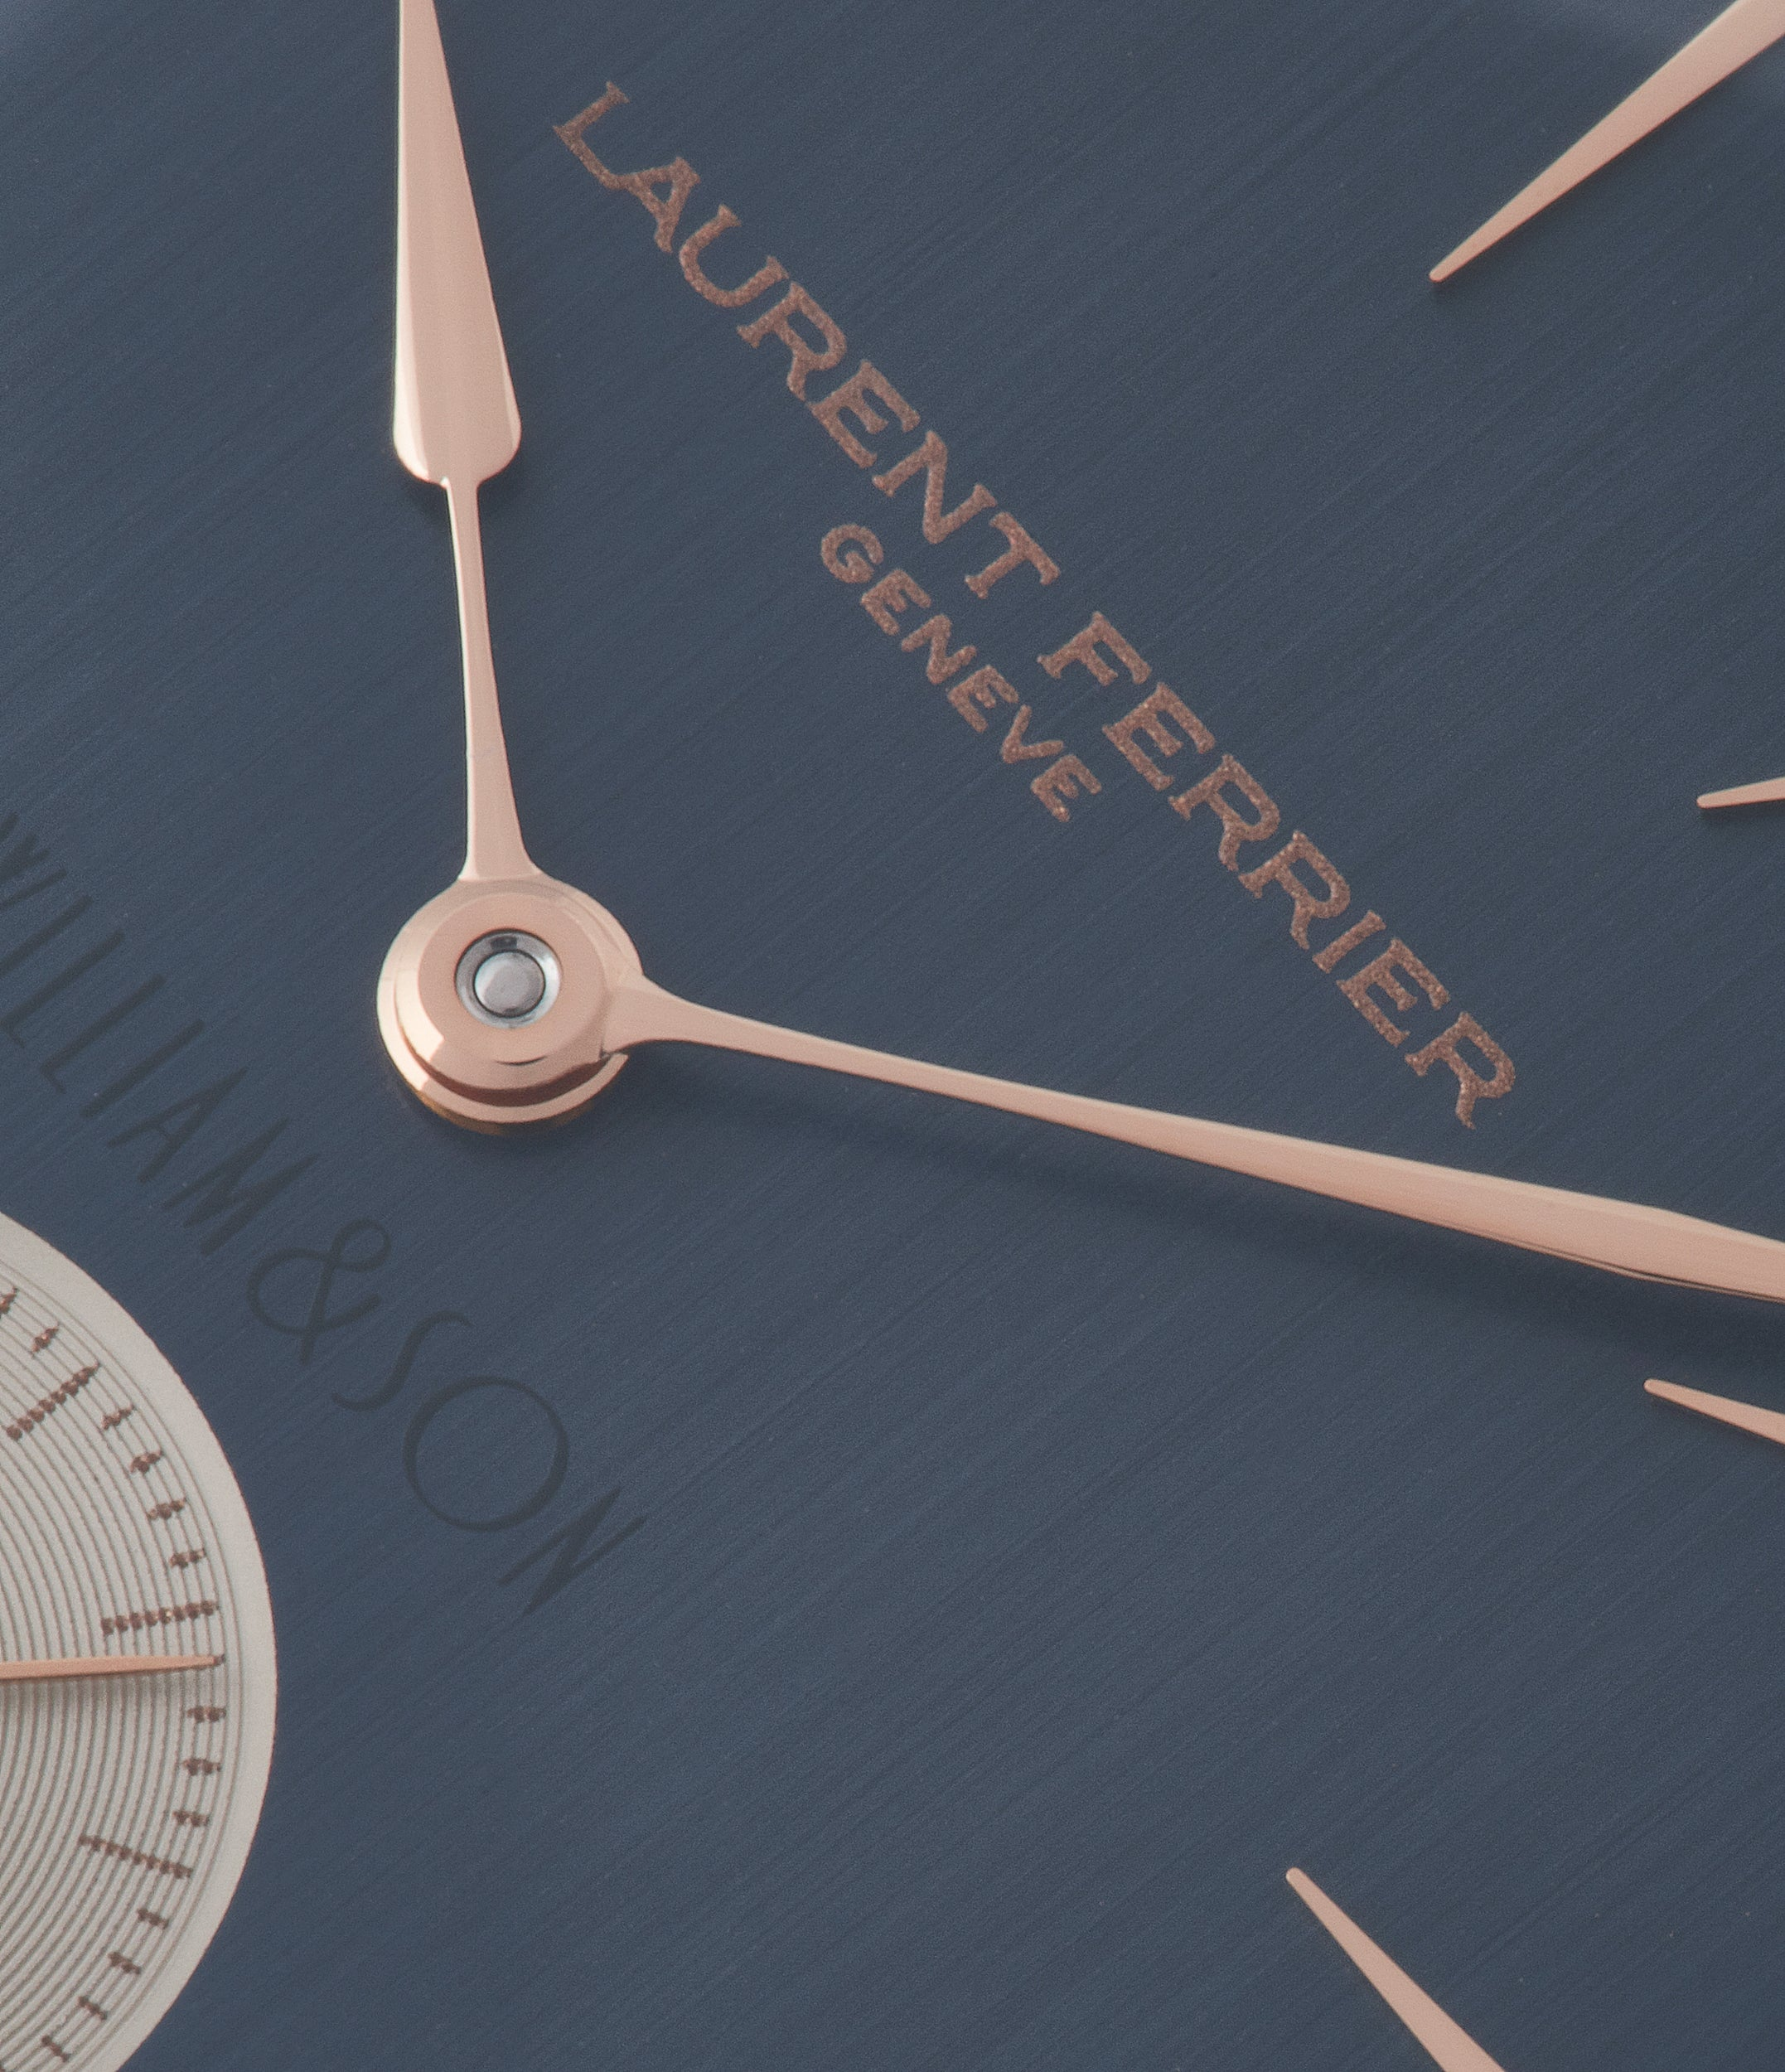 blue dial Laurent Ferrier Galet Square Micro-rotor by  William & Son rose gold rare luxury dress watch for sale online at A Collected Man London UK specialist and approved reseller of rare independent watchmakers